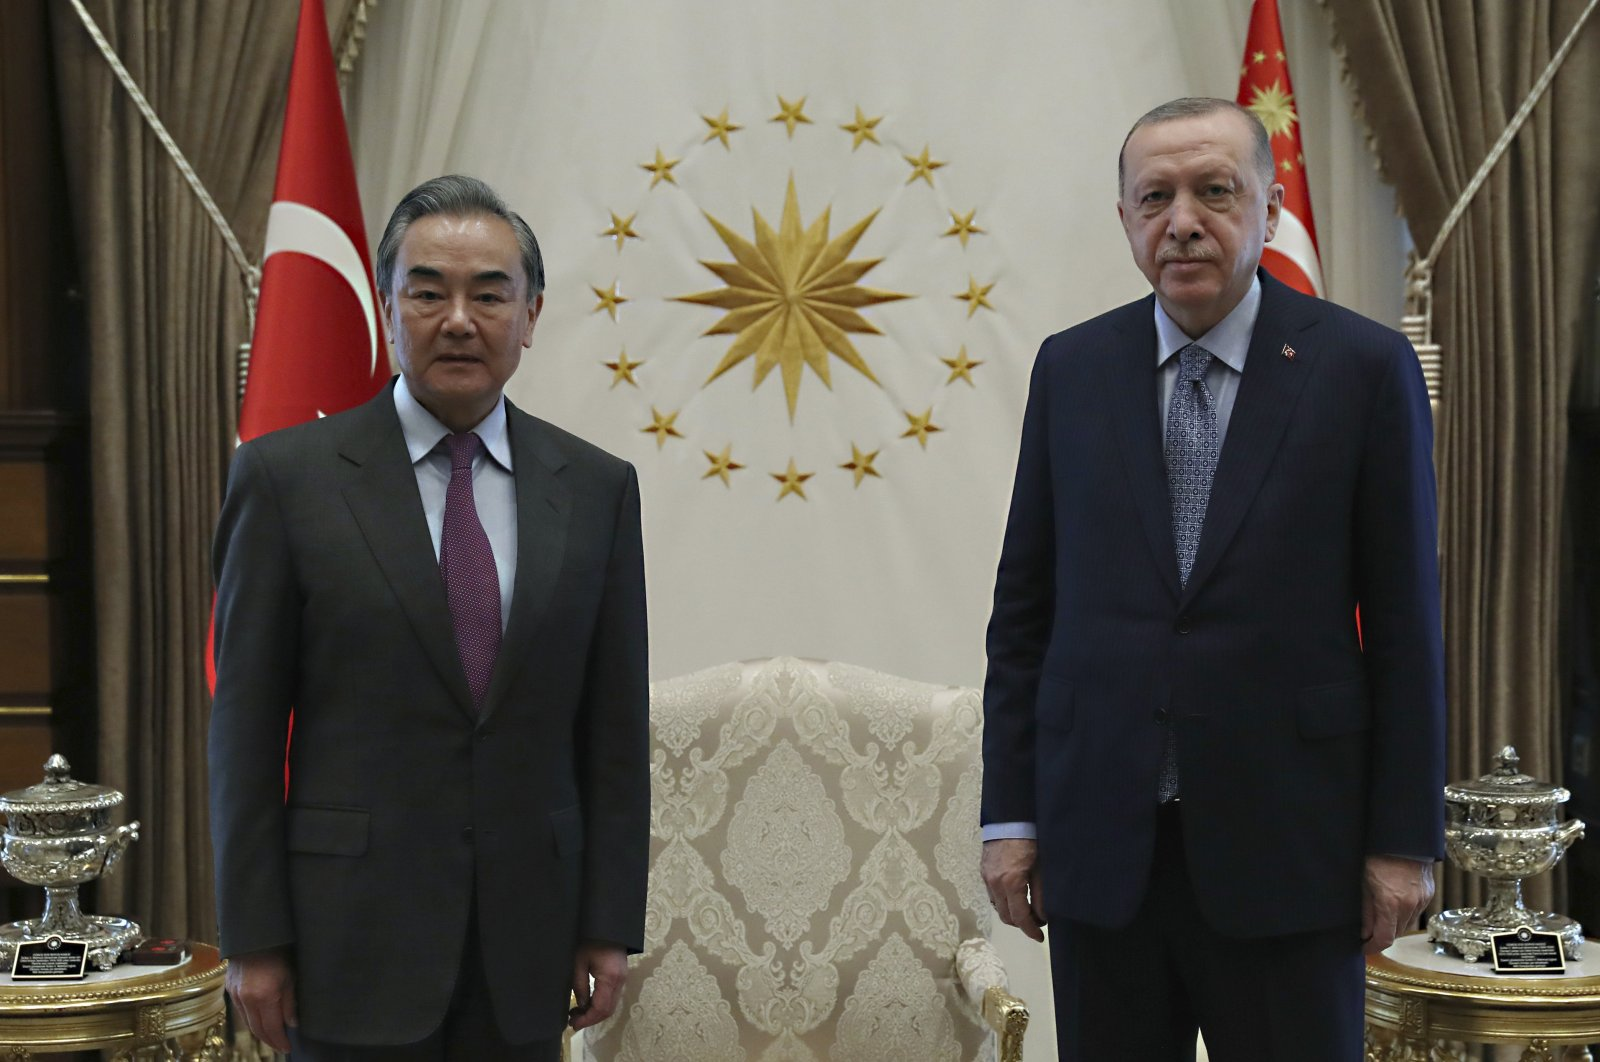 President Recep Tayyip Erdoğan (R) and Chinese Foreign Minister Wang Yi pose for photos before a meeting, in Ankara, Turkey, March 25, 2021. (AP Photo)